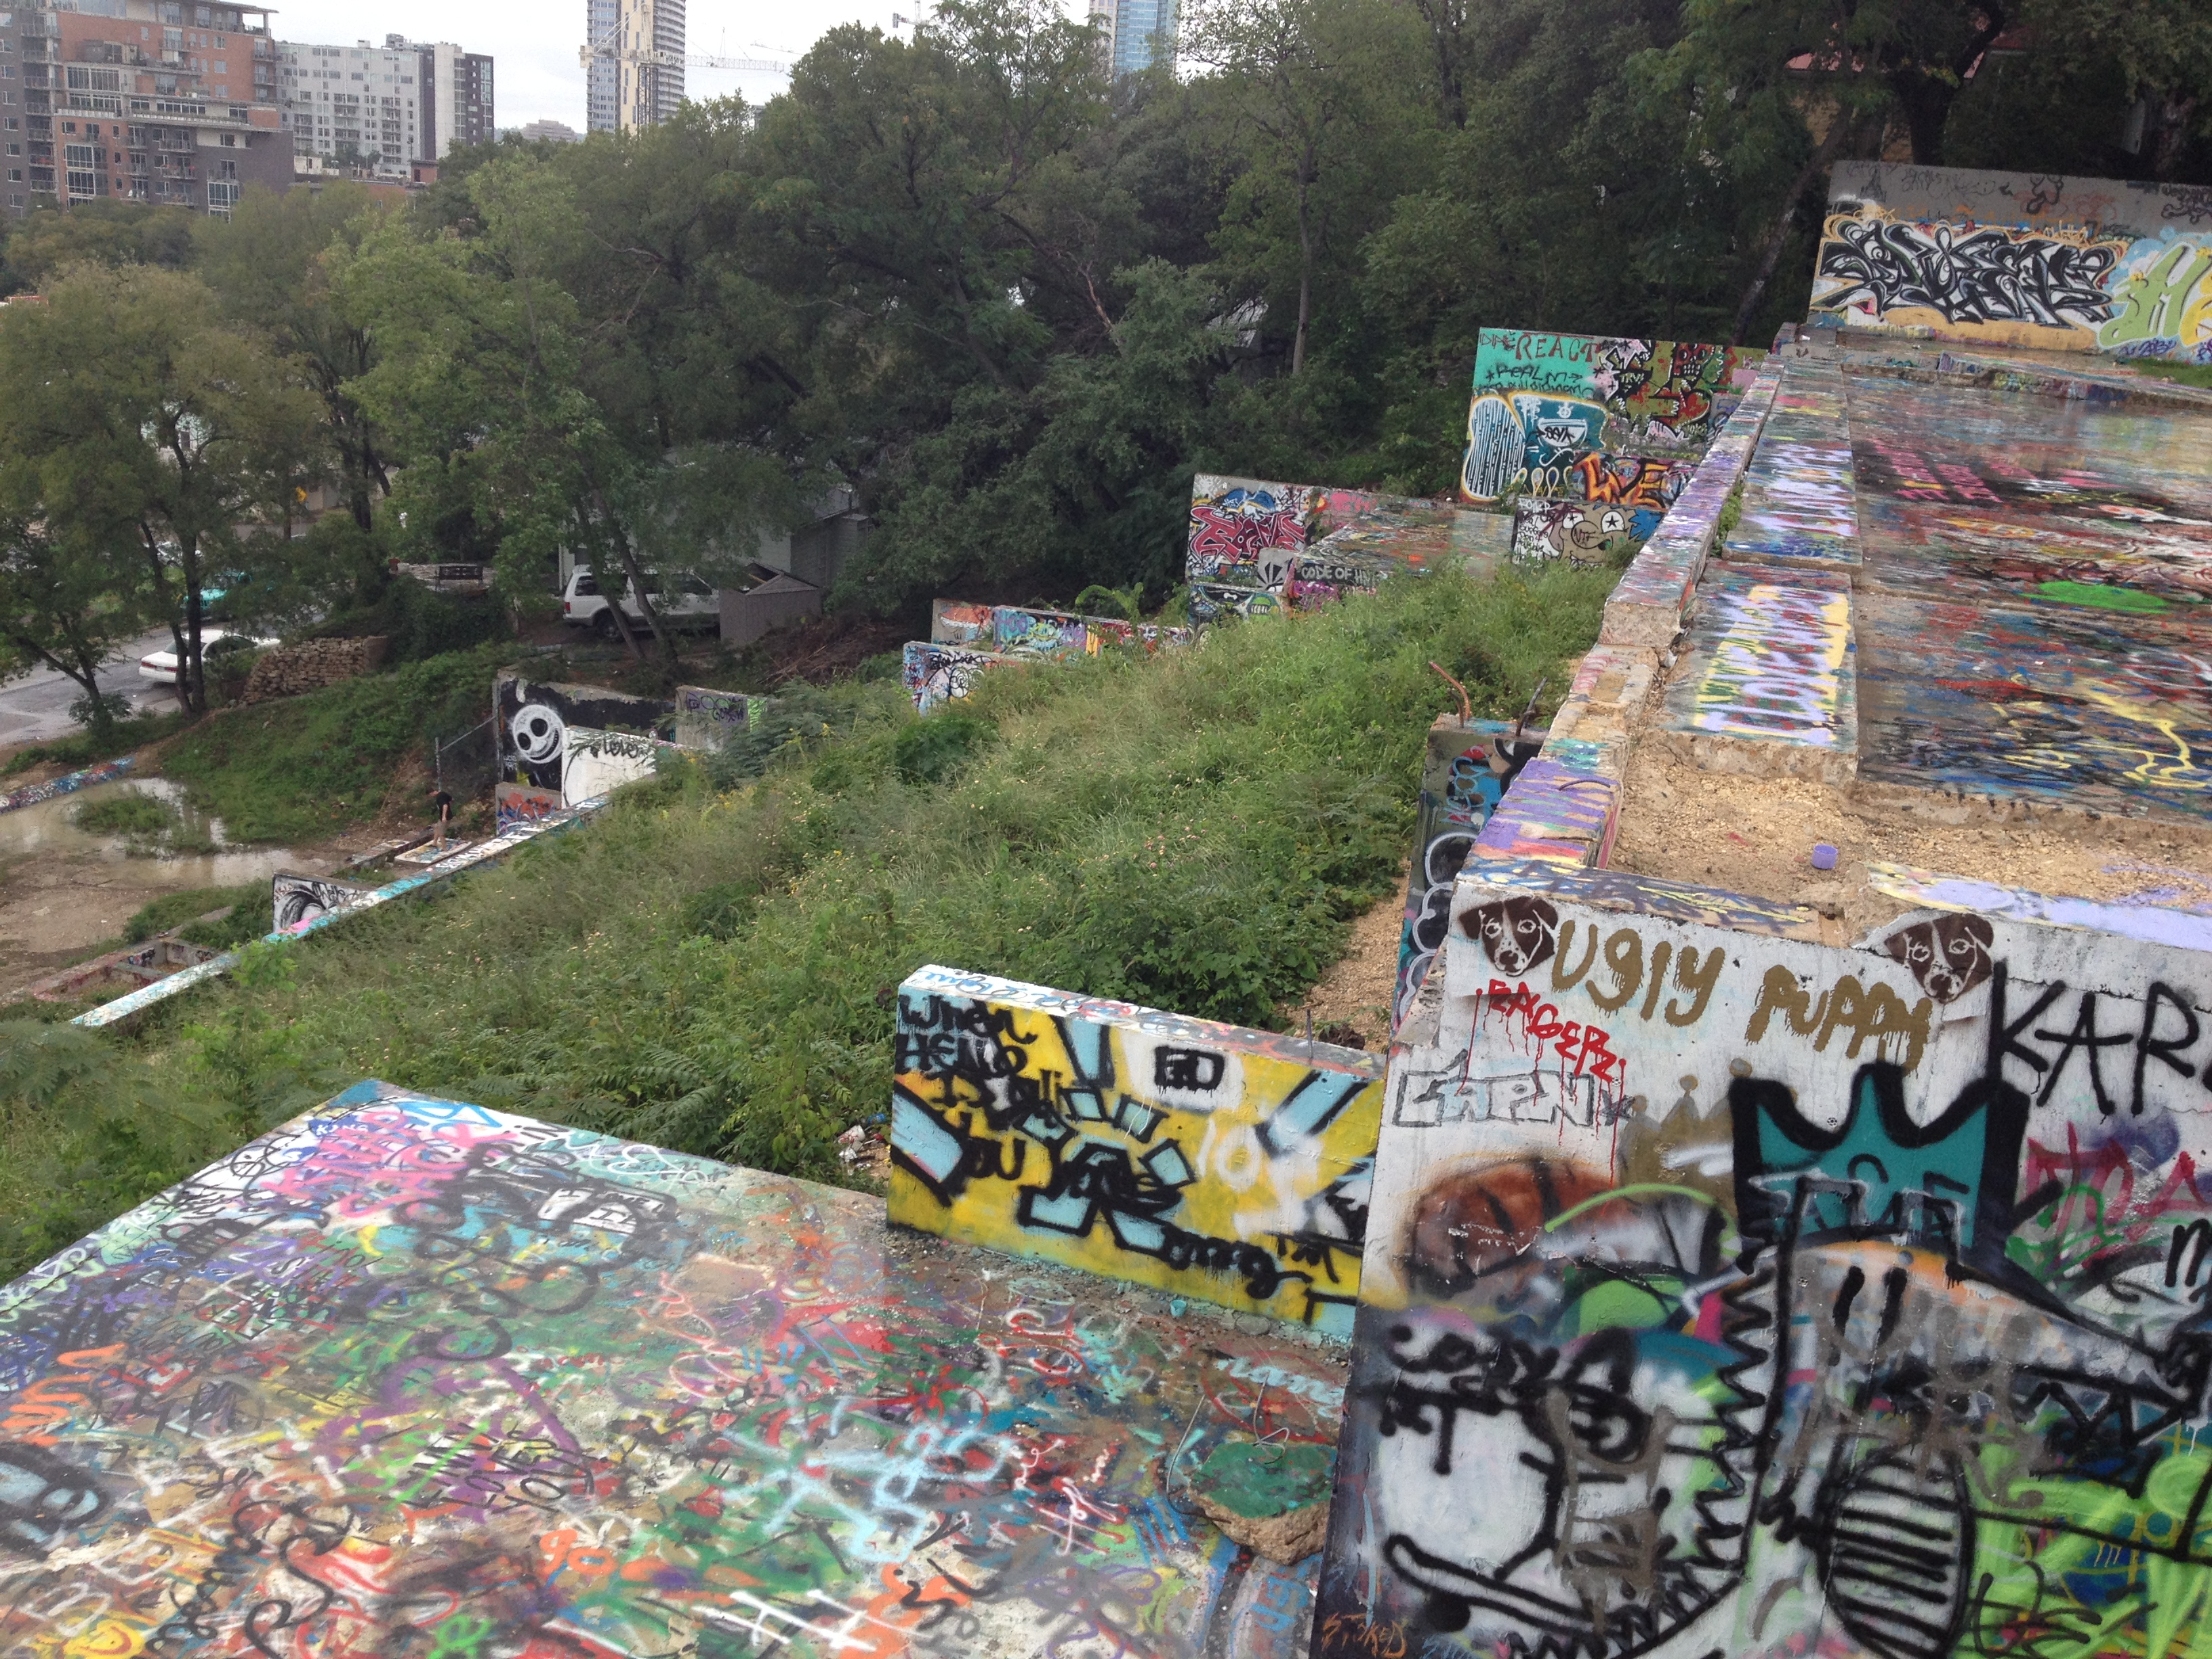 Graffiti wall austin - I Finally Hiked Up The Other Day Under The Excuse Of Showing Our Guest Derek But I Realized I Should Be Up Here Chilling All The Time